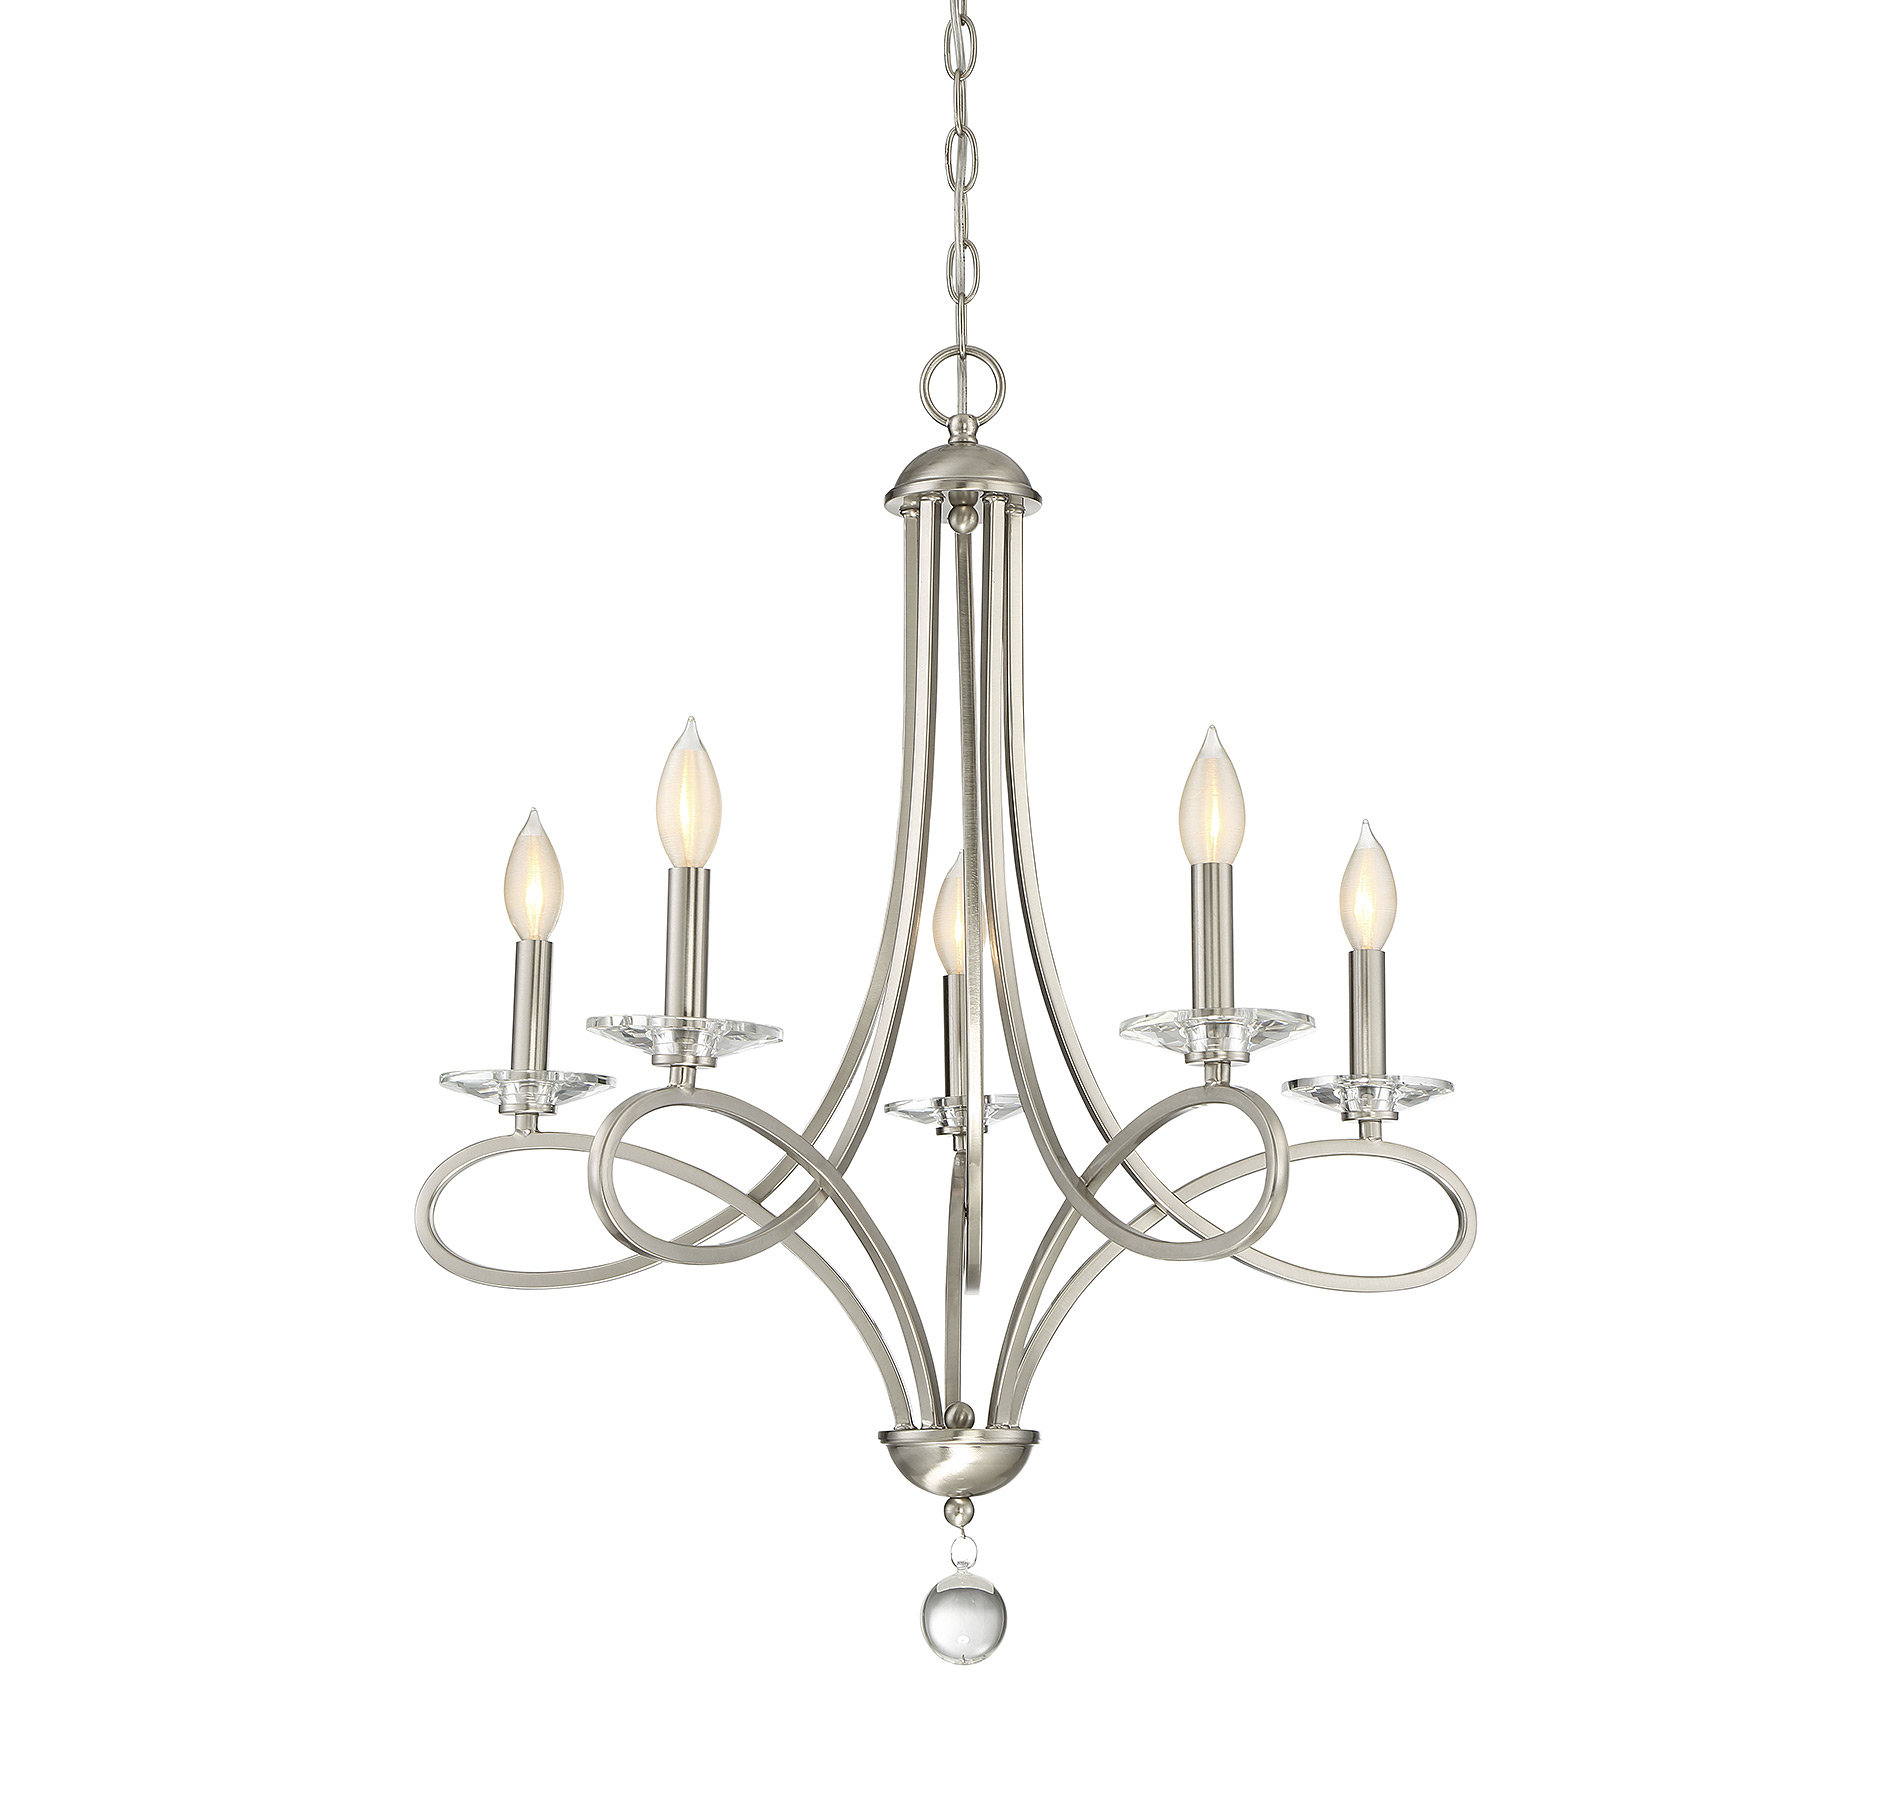 Willa Arlo Interiors Berger 5 Light Candle Style Chandelier Intended For Hesse 5 Light Candle Style Chandeliers (View 5 of 30)